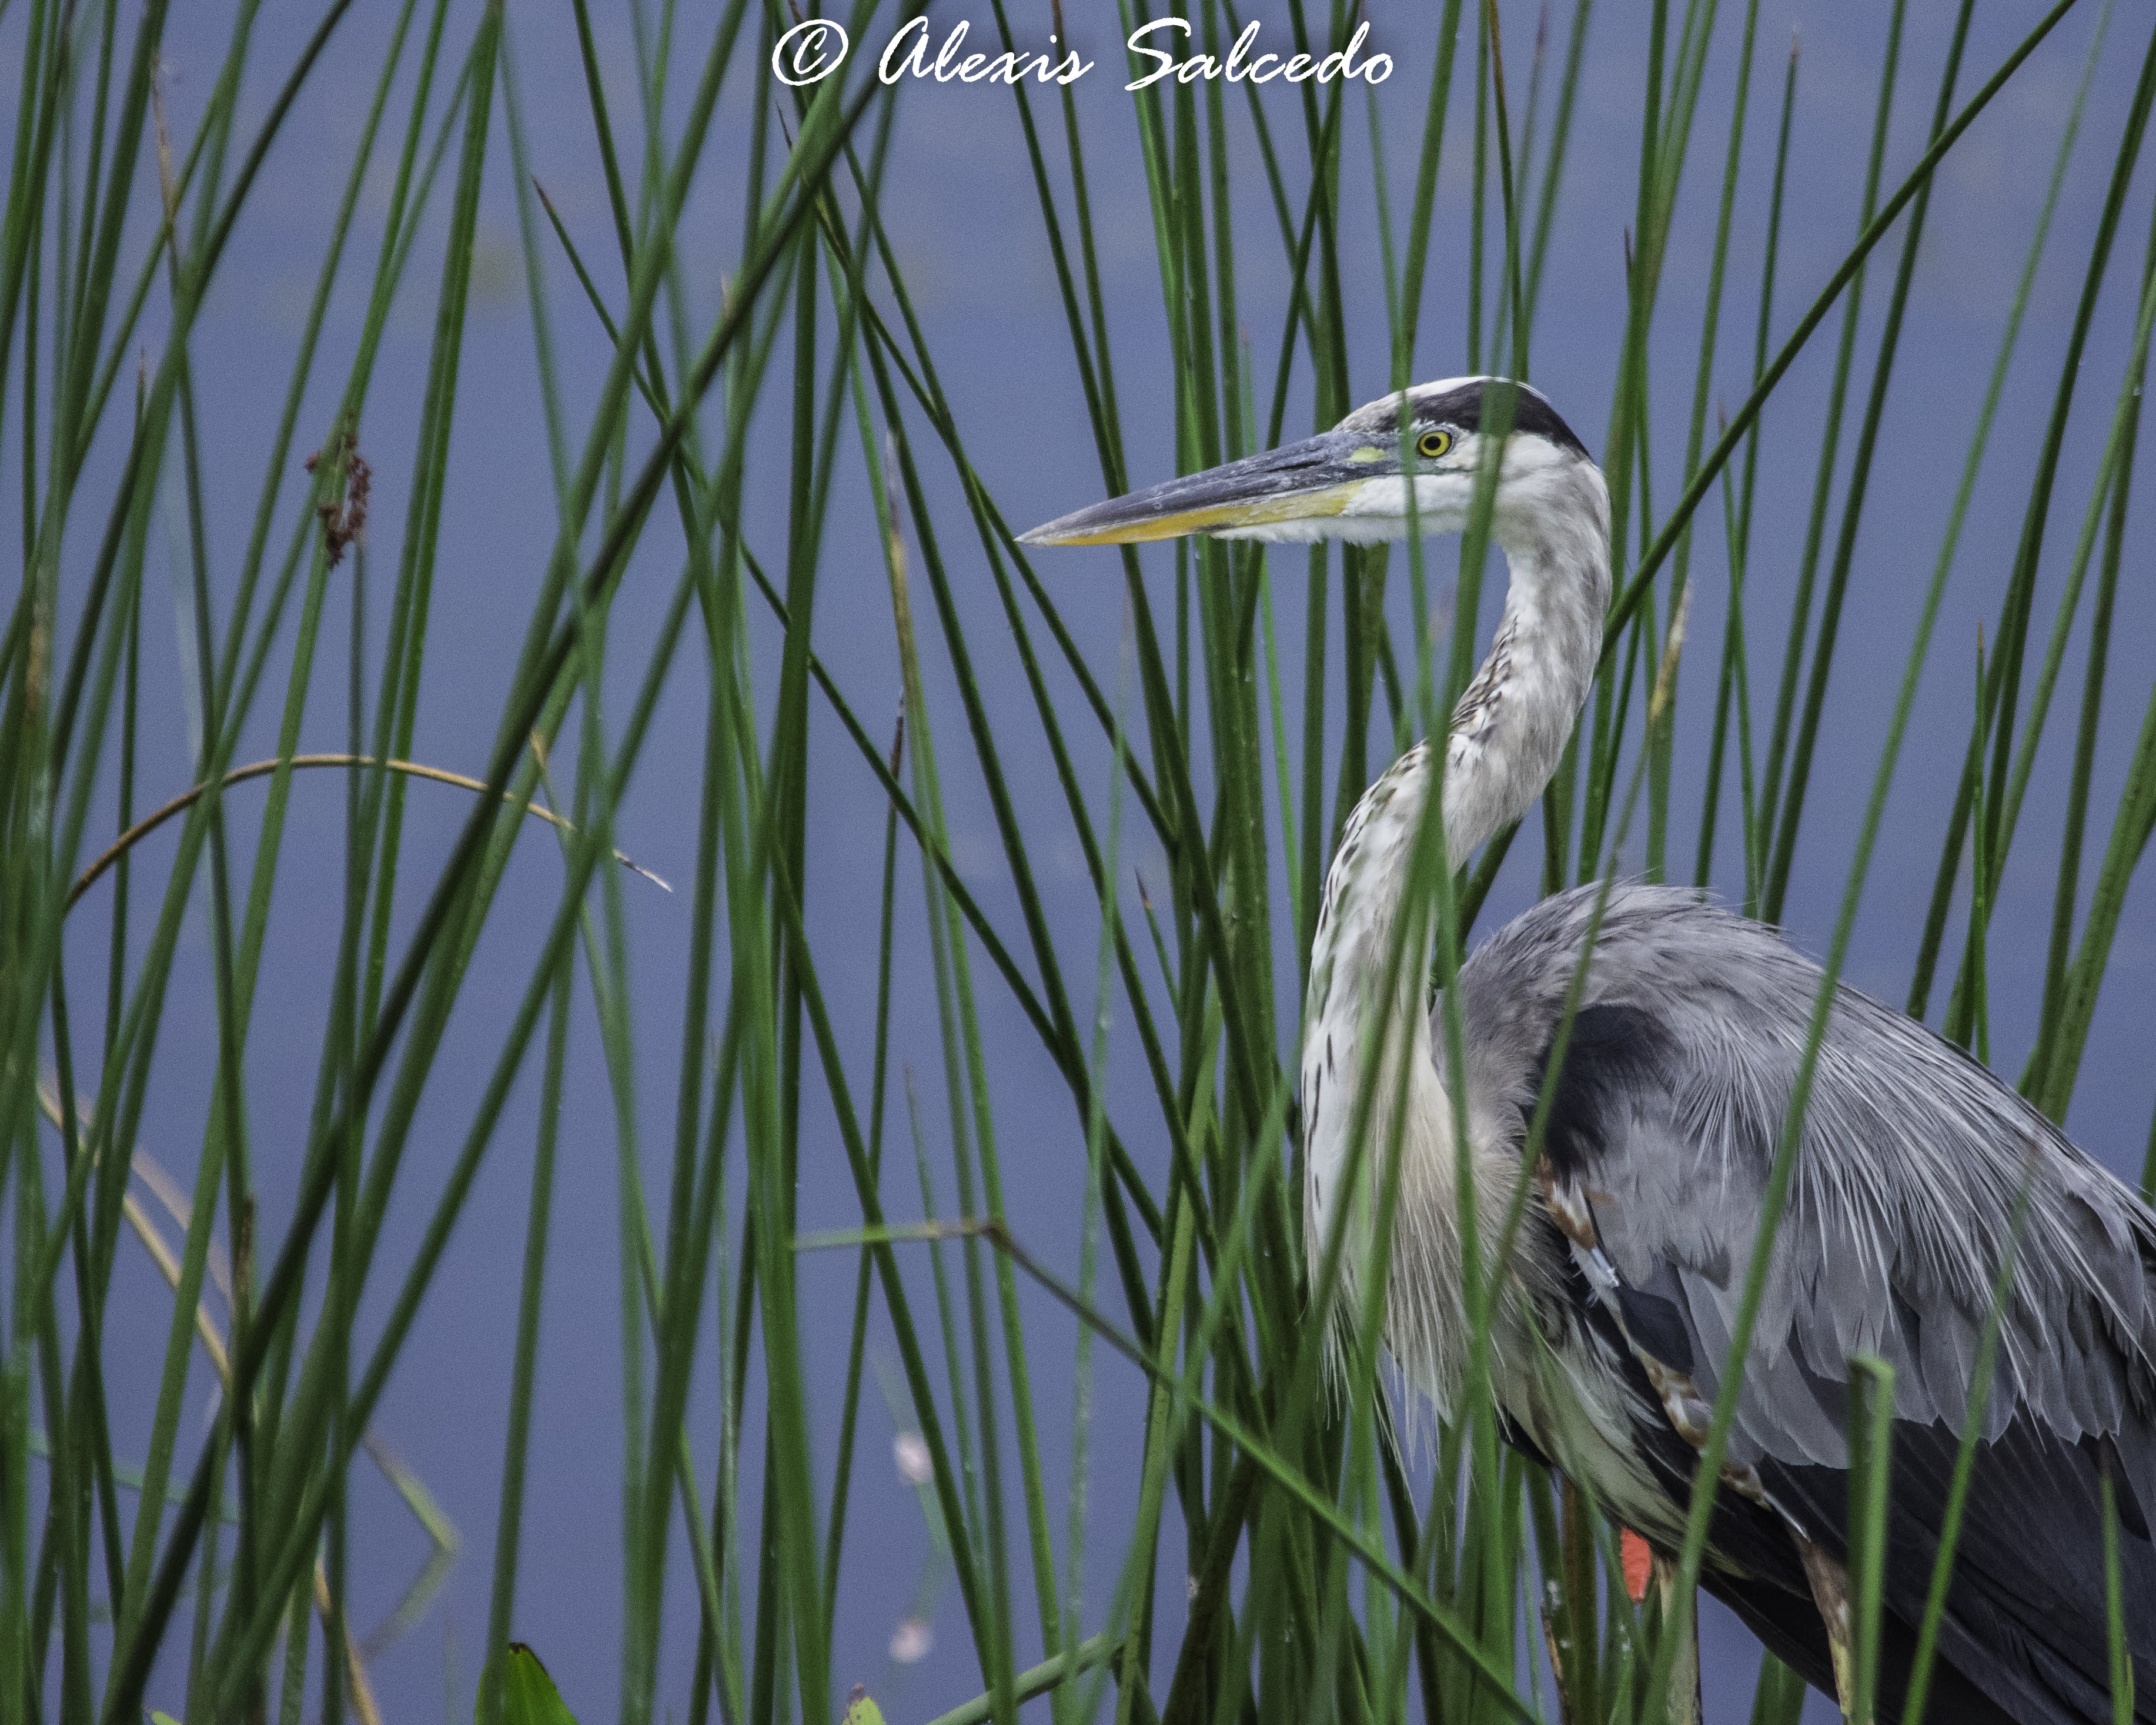 Great Blue Heron (Ardea herodias) among the Reeds